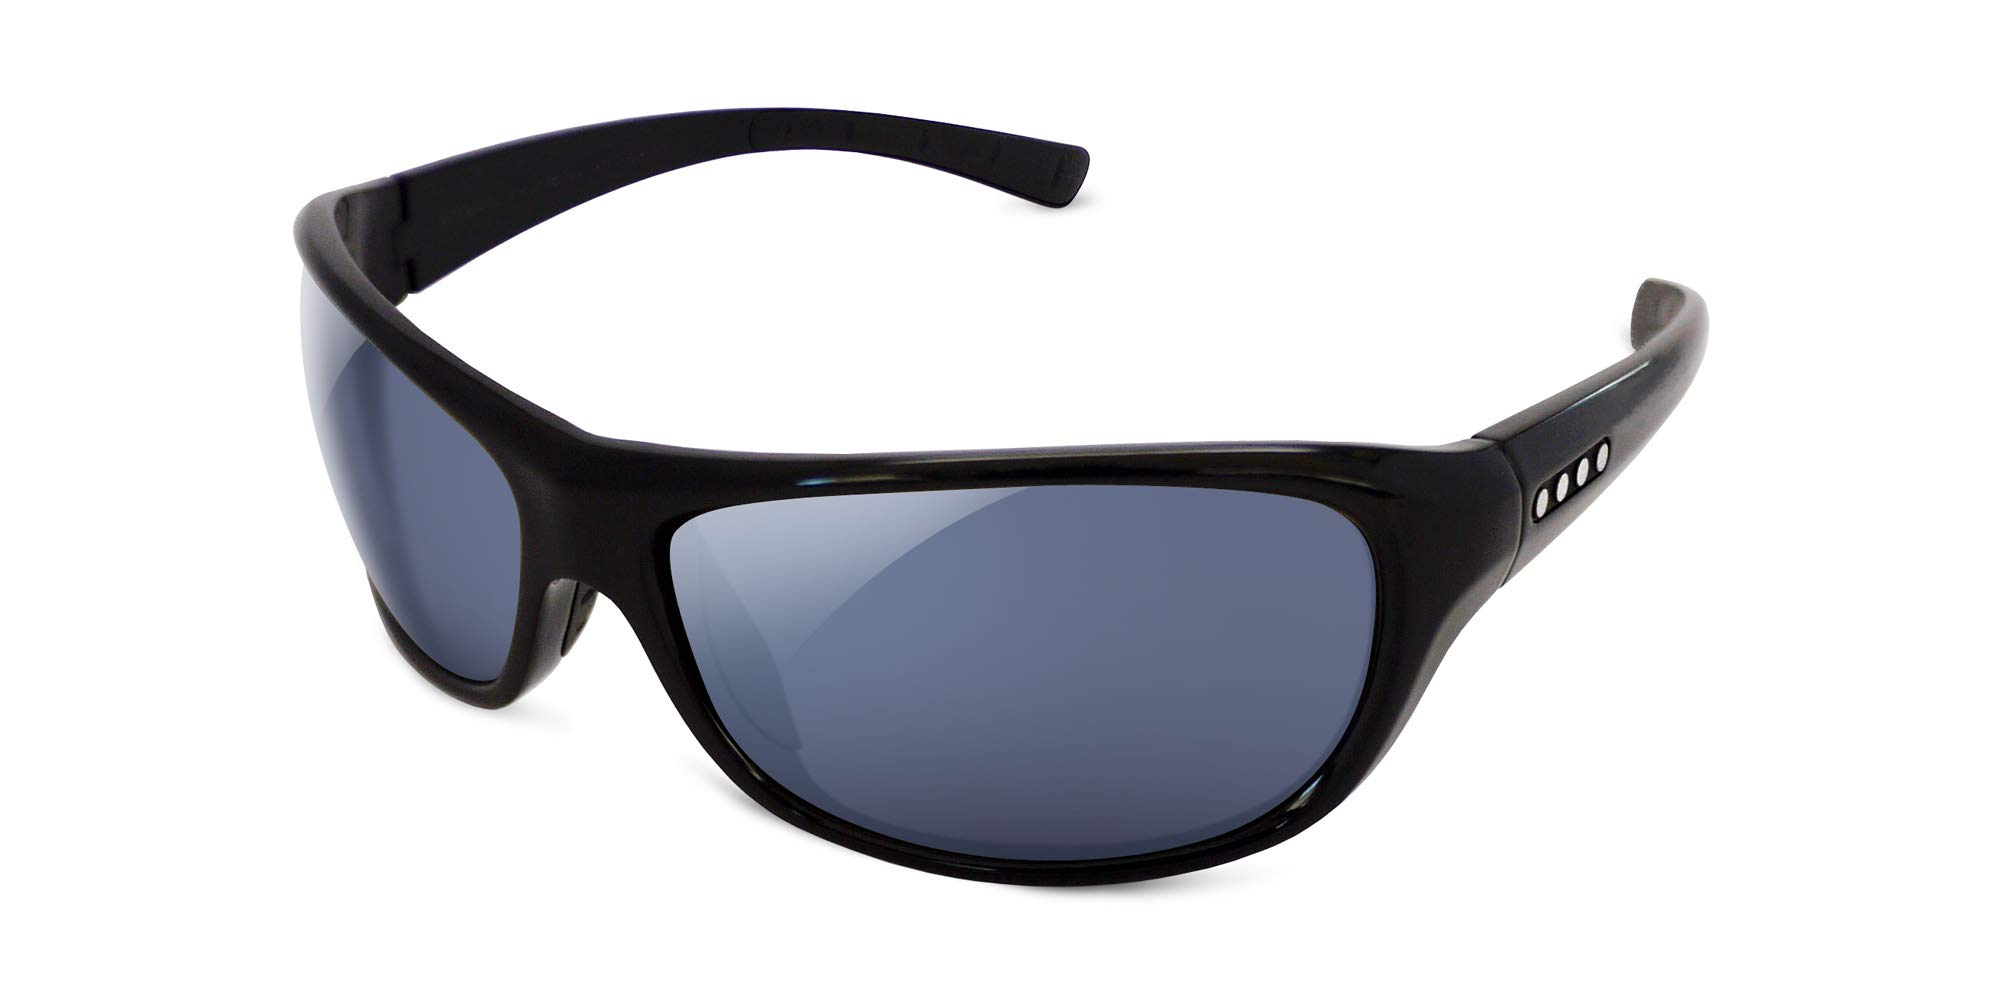 Color Blind Glasses by EnChroma - Monterey Black Wrap - Around Sunglasses - Cx3 Outdoor Lens - Ideal For Deutan, Protan Color Blindness